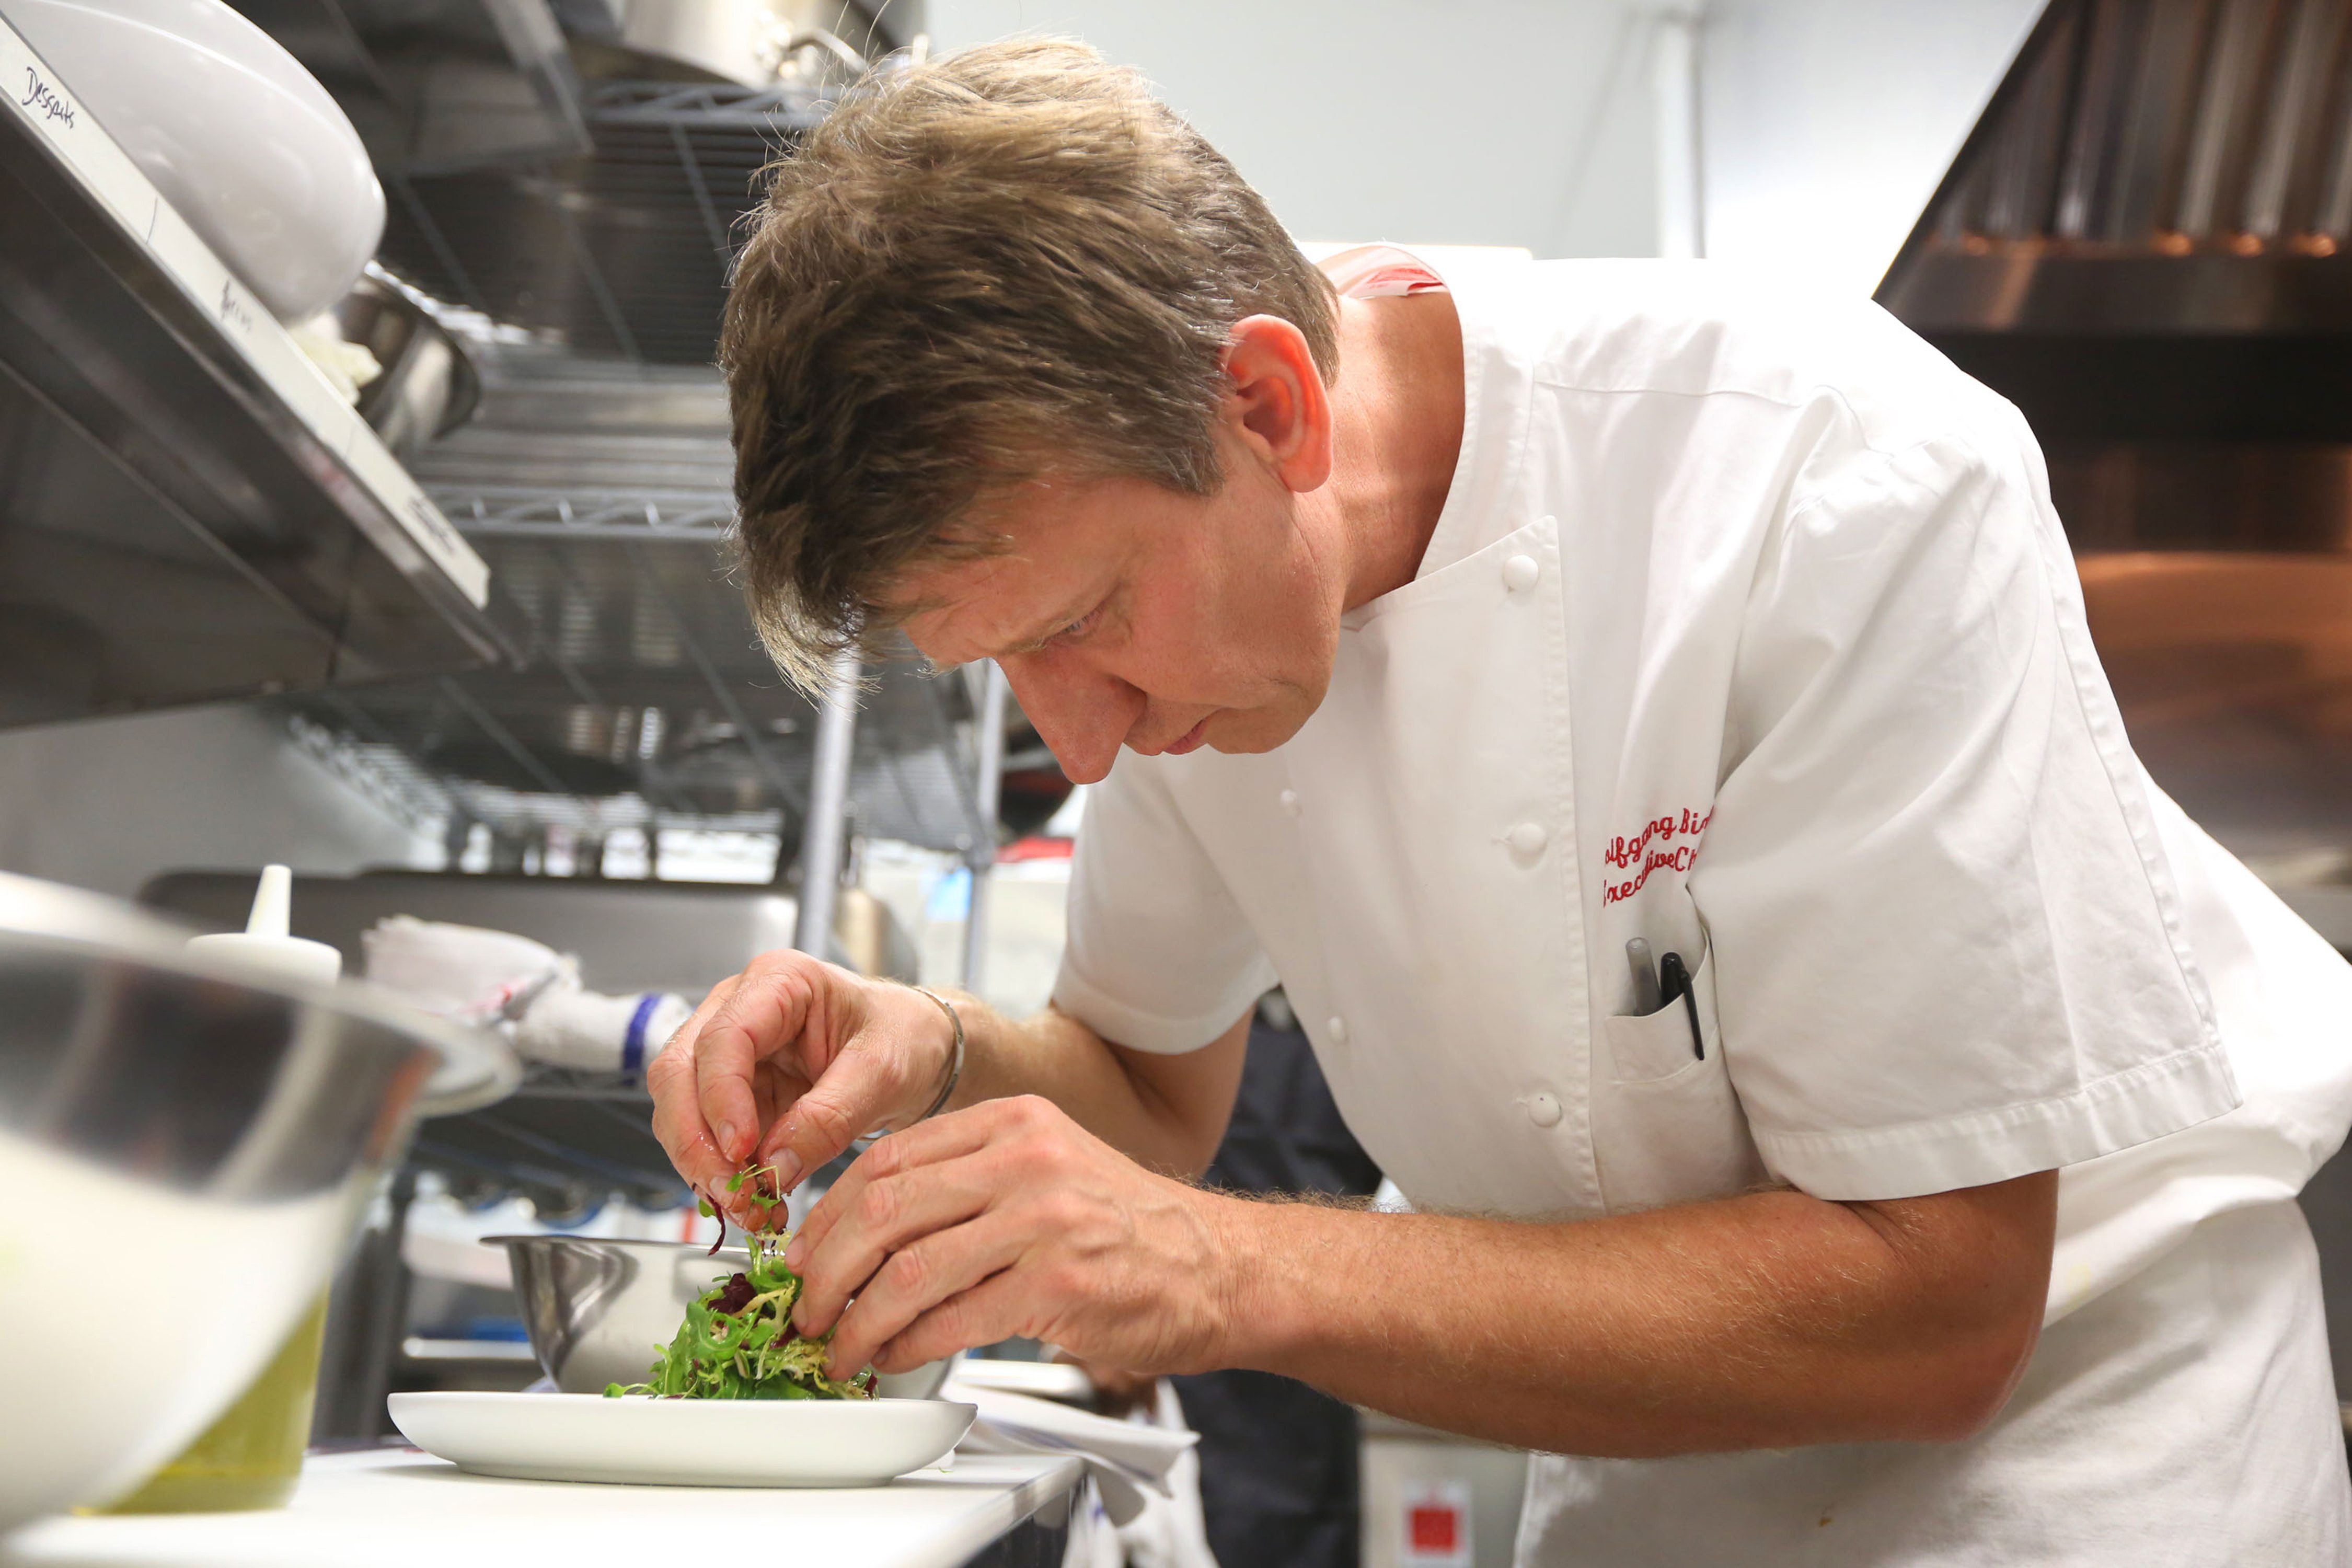 Executive Chef Wolfgang Birk